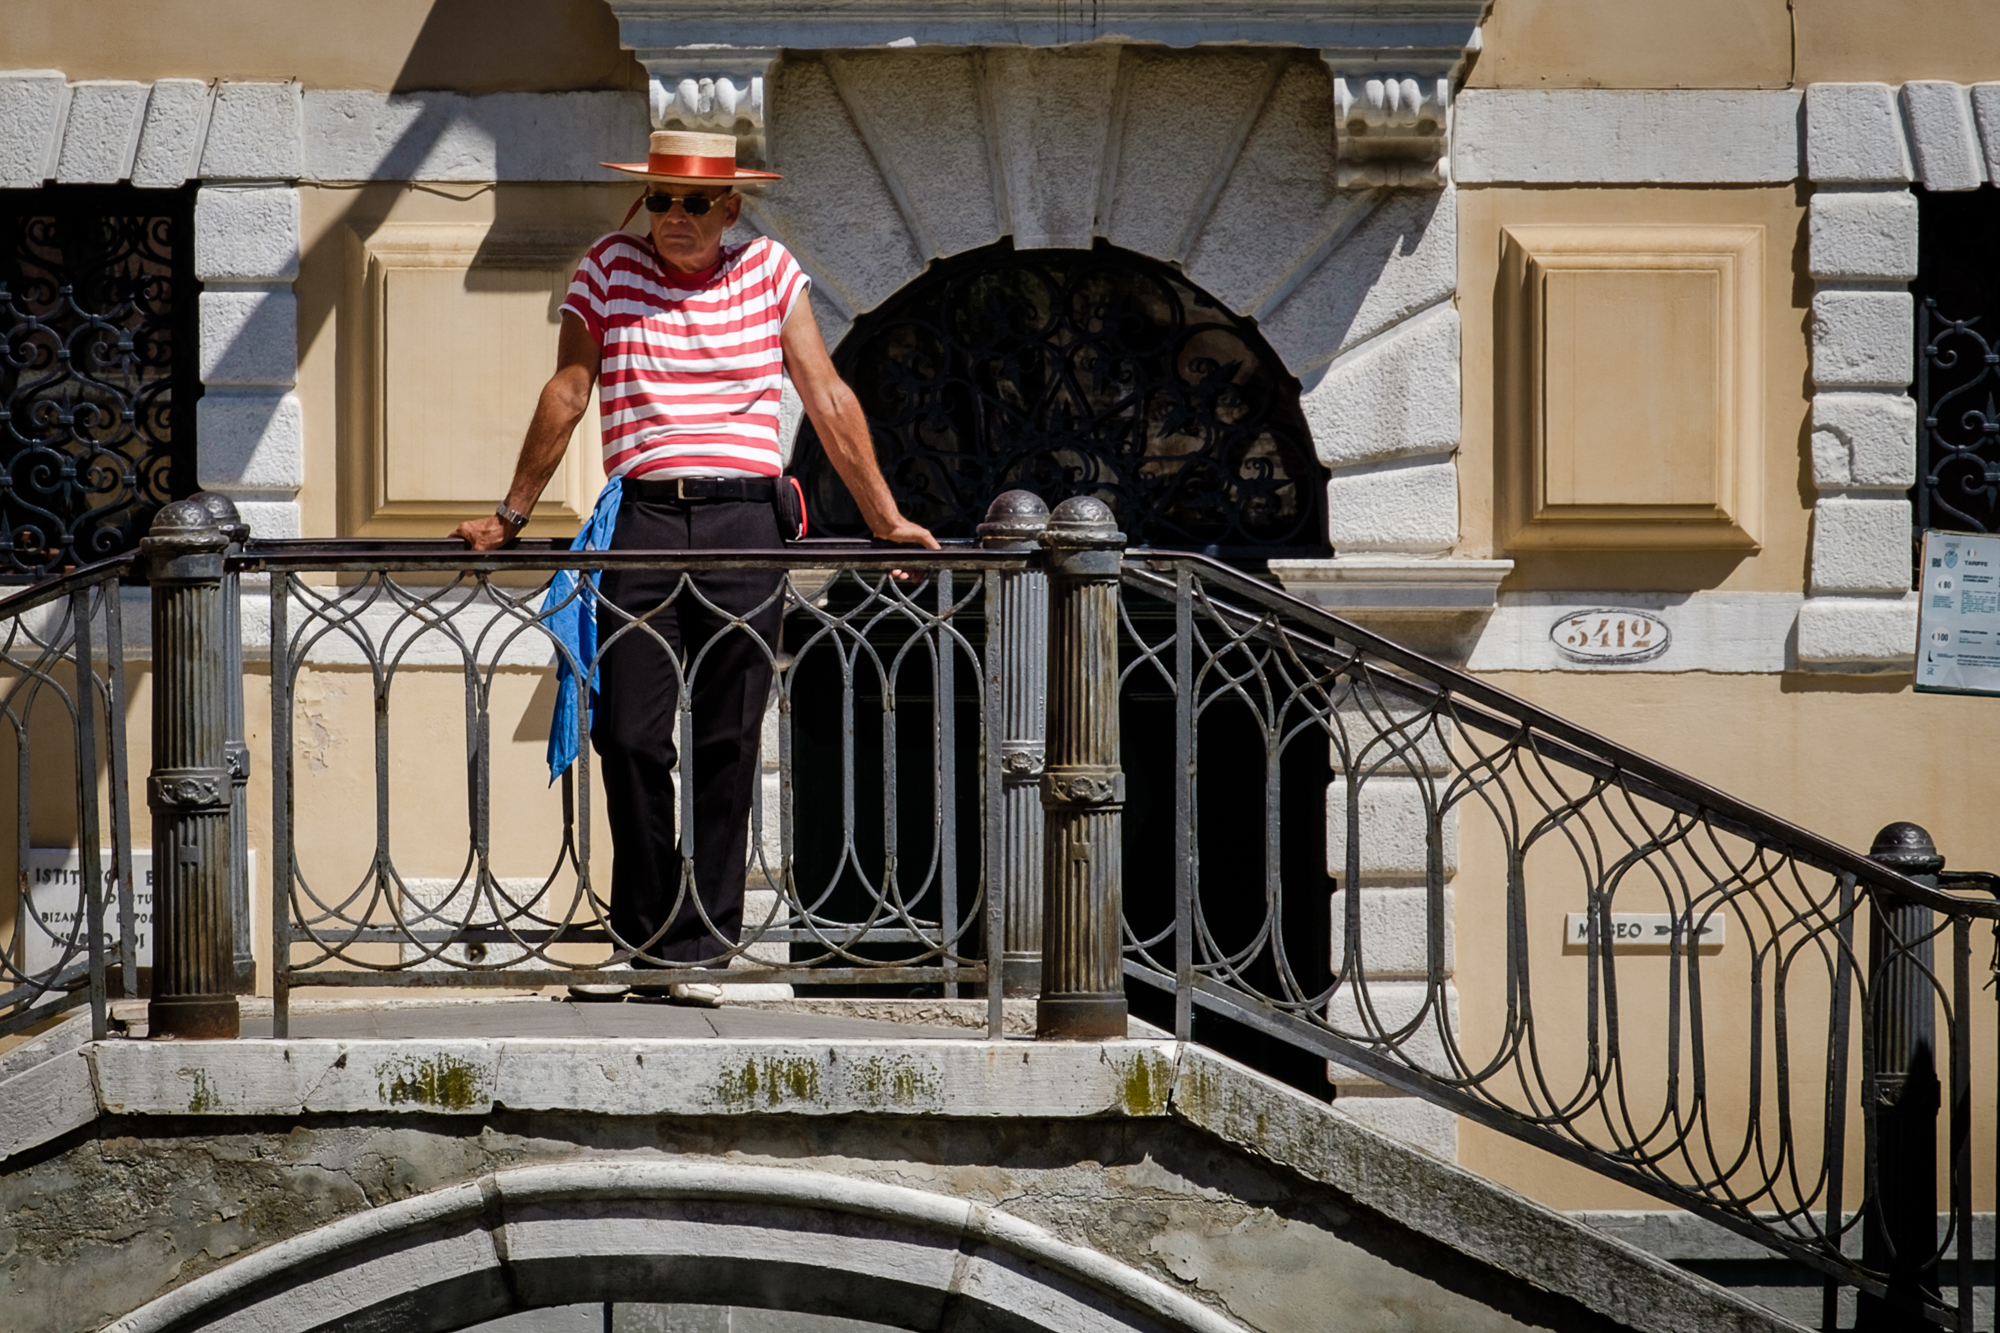 A photo of a Gondolier on a bridge in Venice taken by Trevor Sherwin